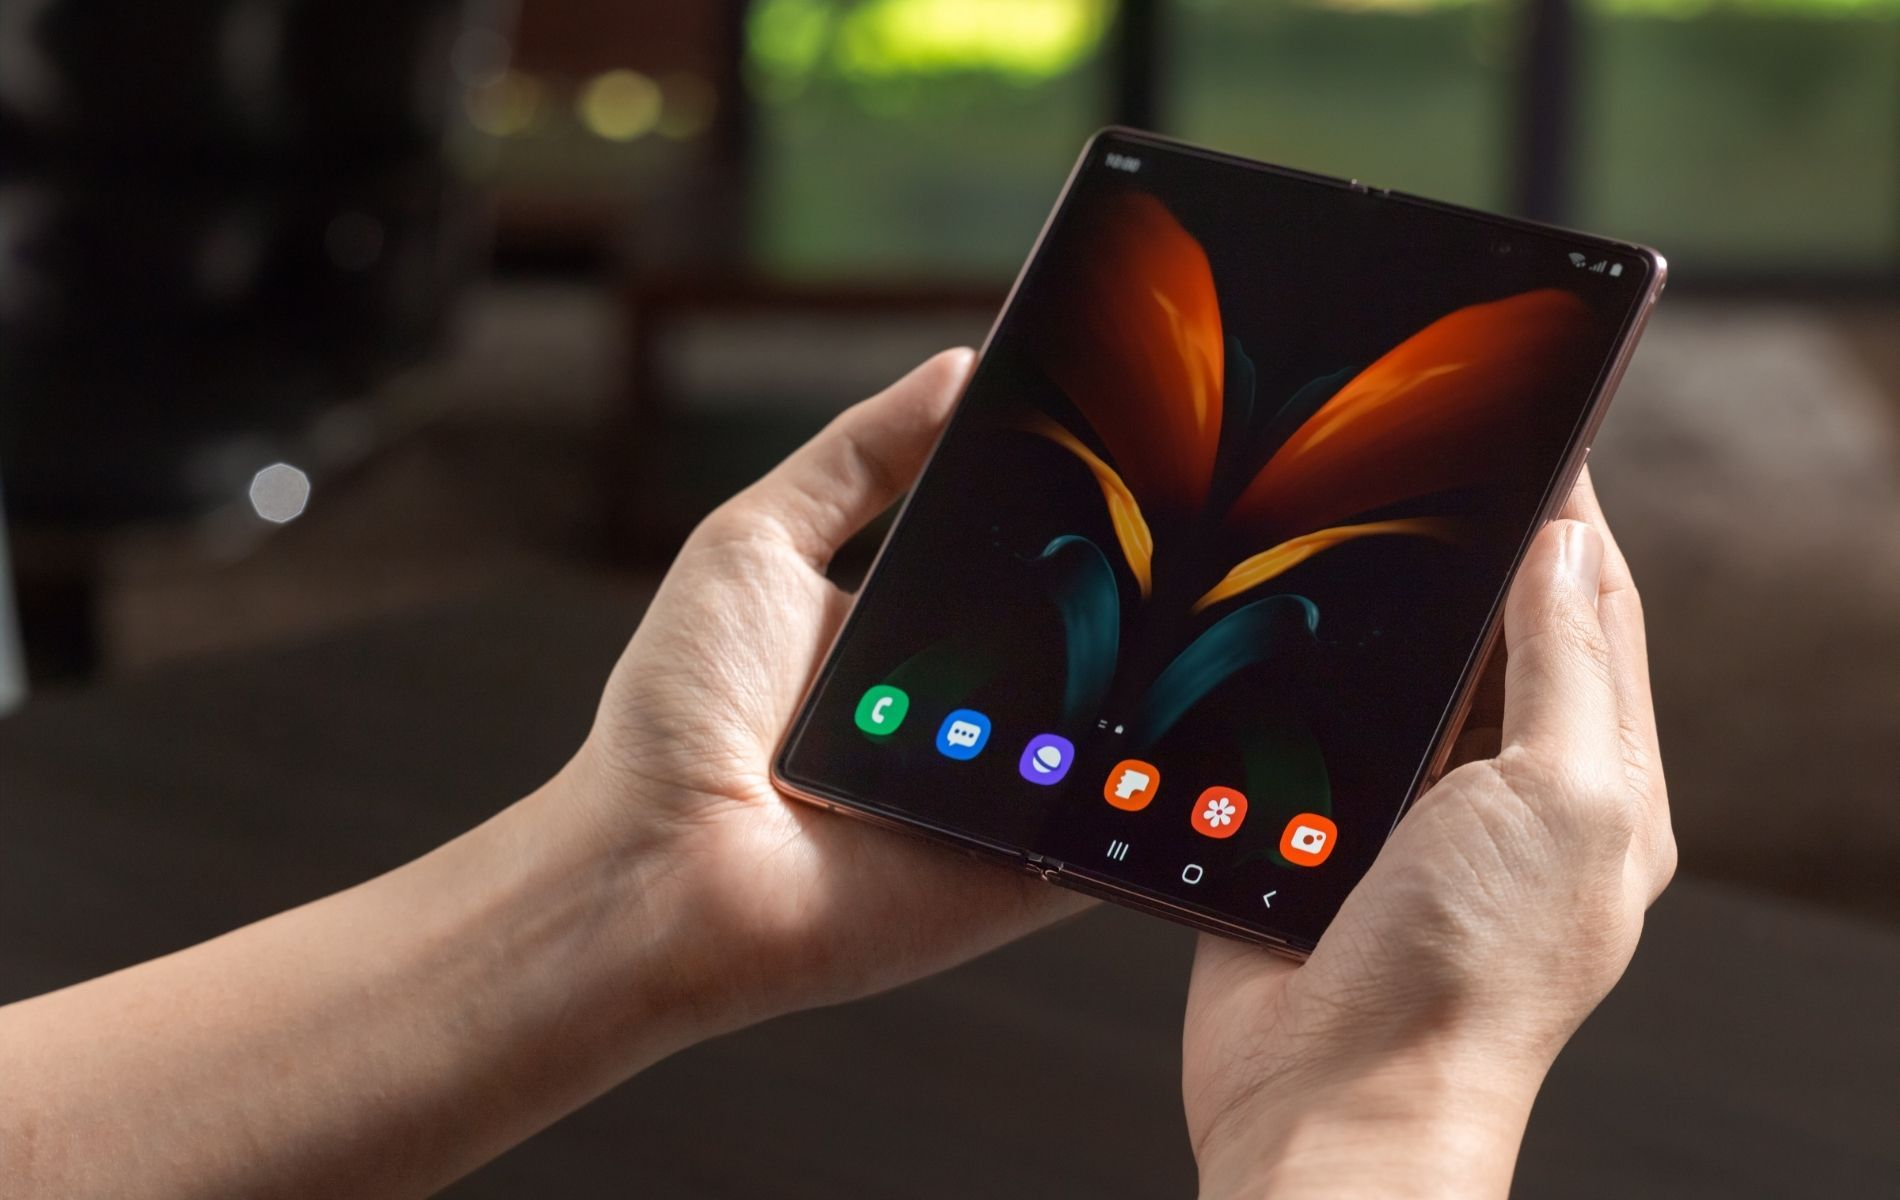 Watch: Samsung Galaxy Z Fold2 5G Makes The Work-From-Hotel Experience Easy And Convenient